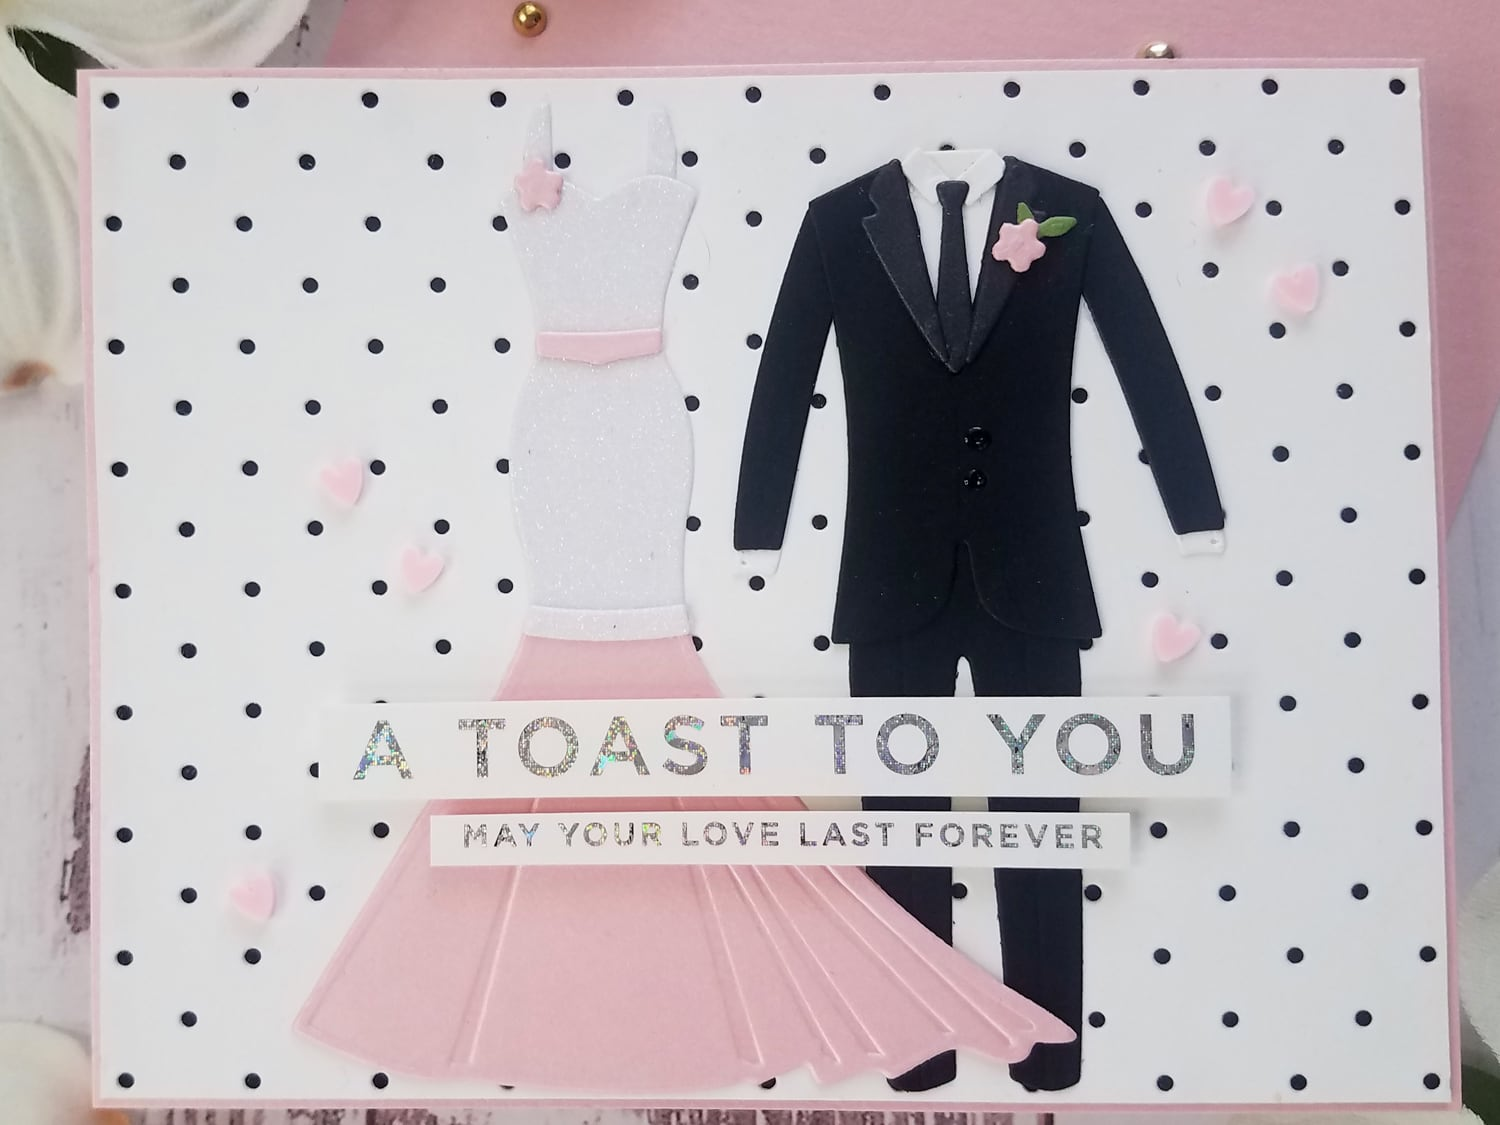 A Toast To You Wedding Card with Die Cut Dress and Tuxedo